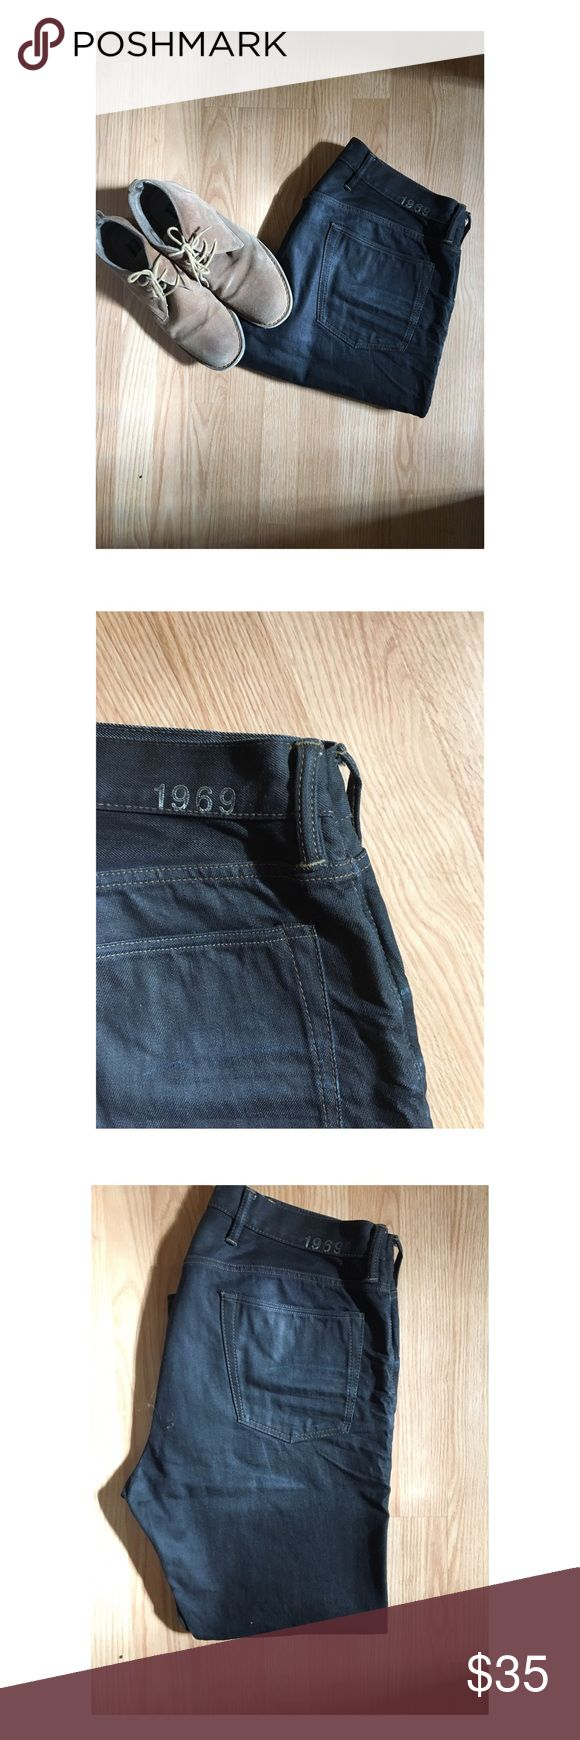 Mens GAP Jeans Men's 1969 GAP Jeans- 38x28,straight. GREAT Condition, dark denim GAP Jeans Straight